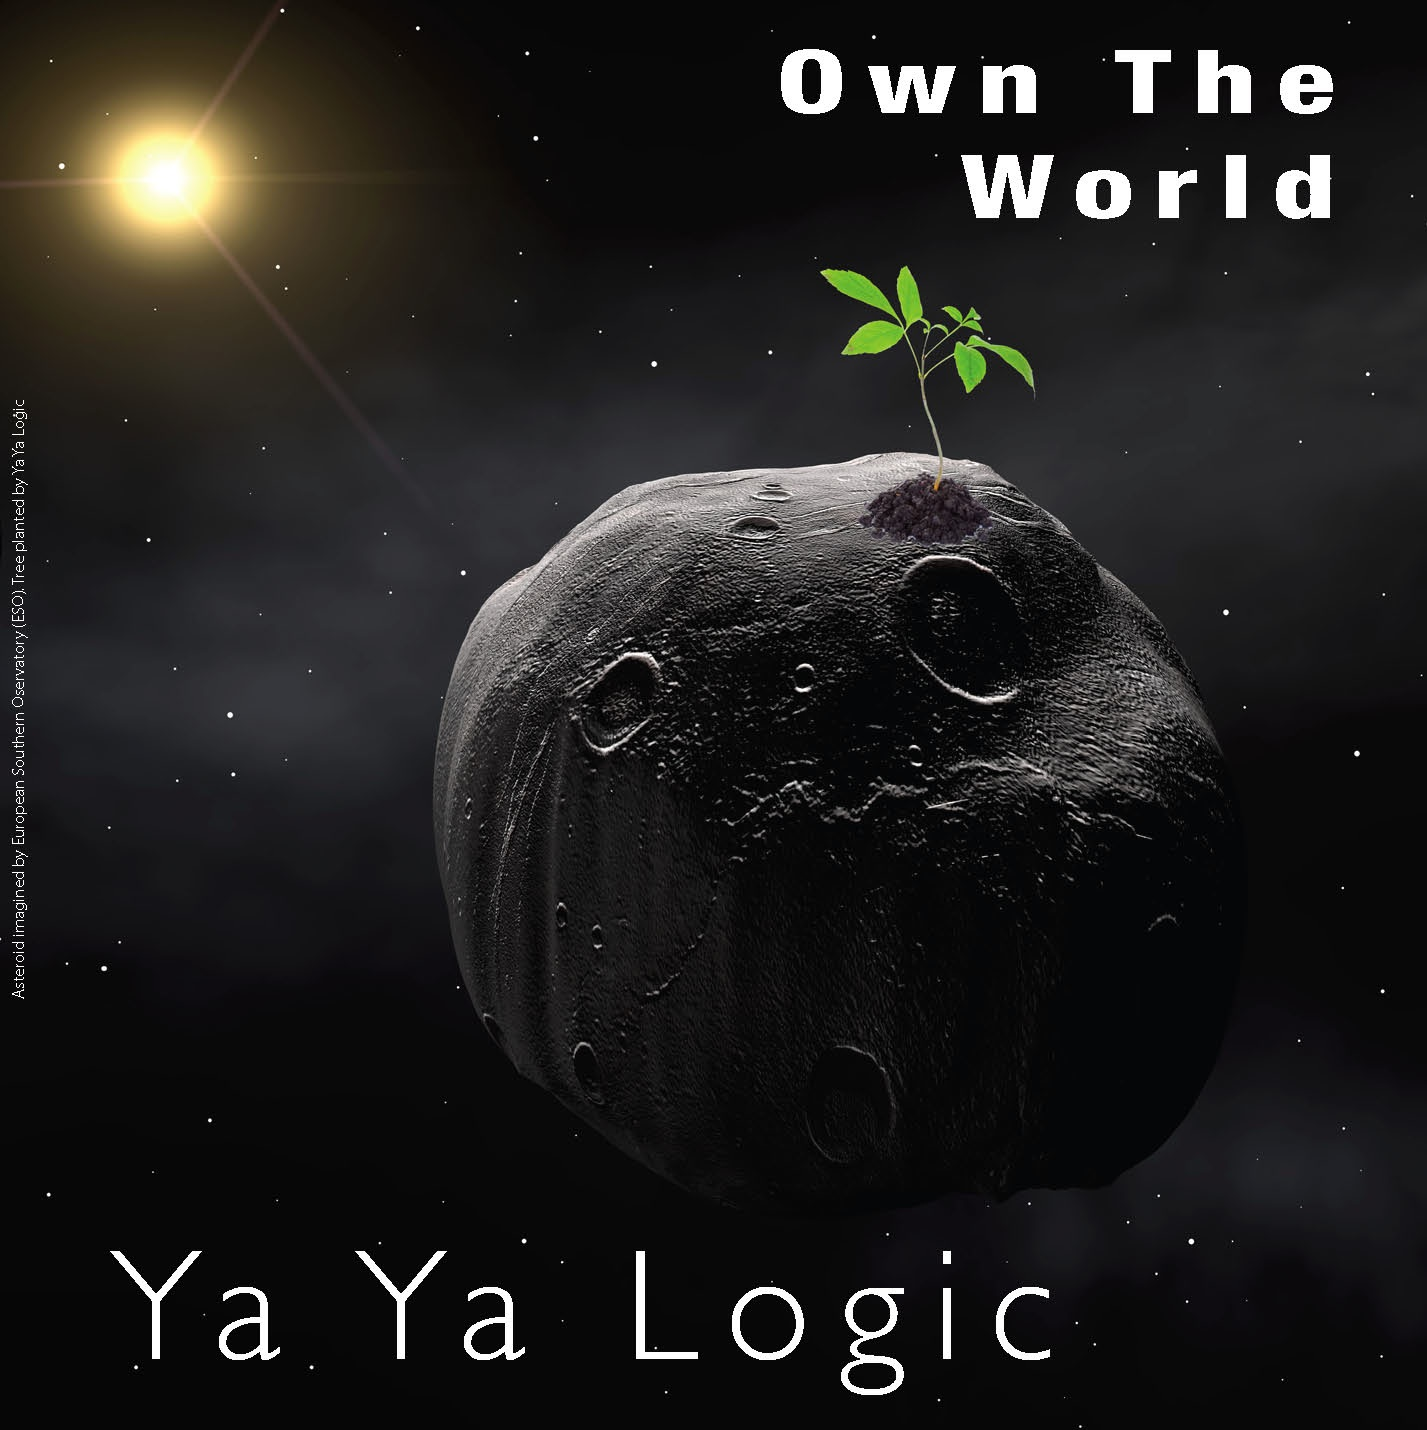 Own the World Album Cover